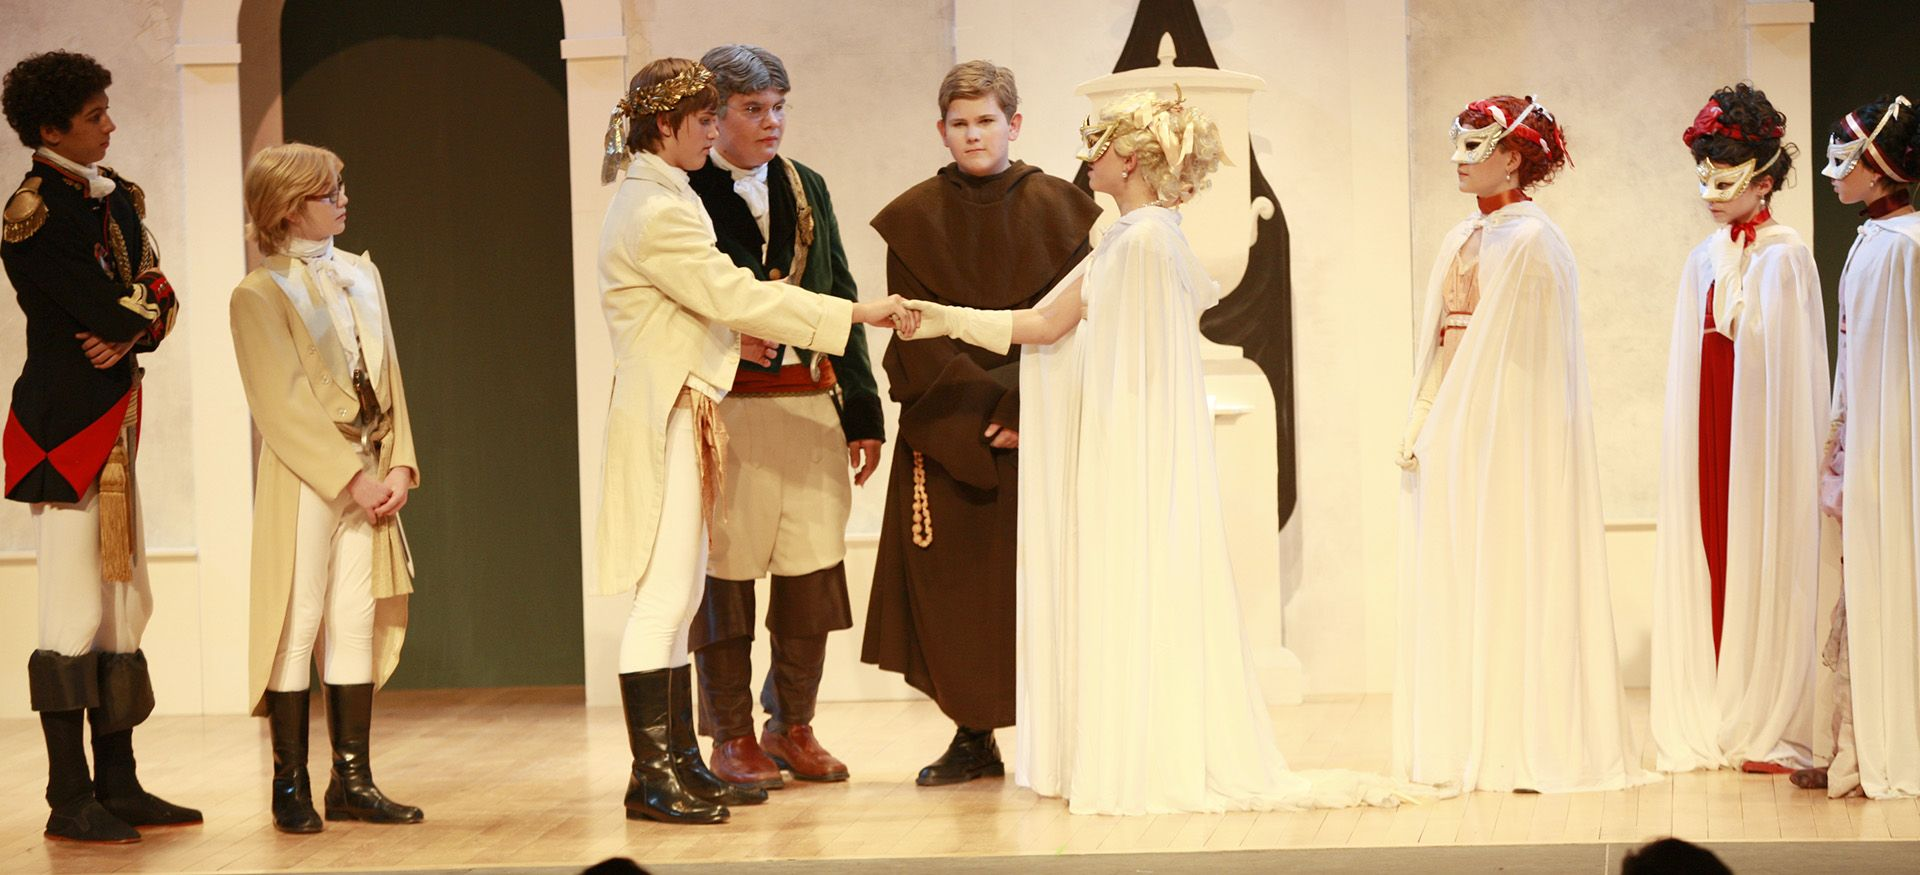 2009, Much Ado About Nothing